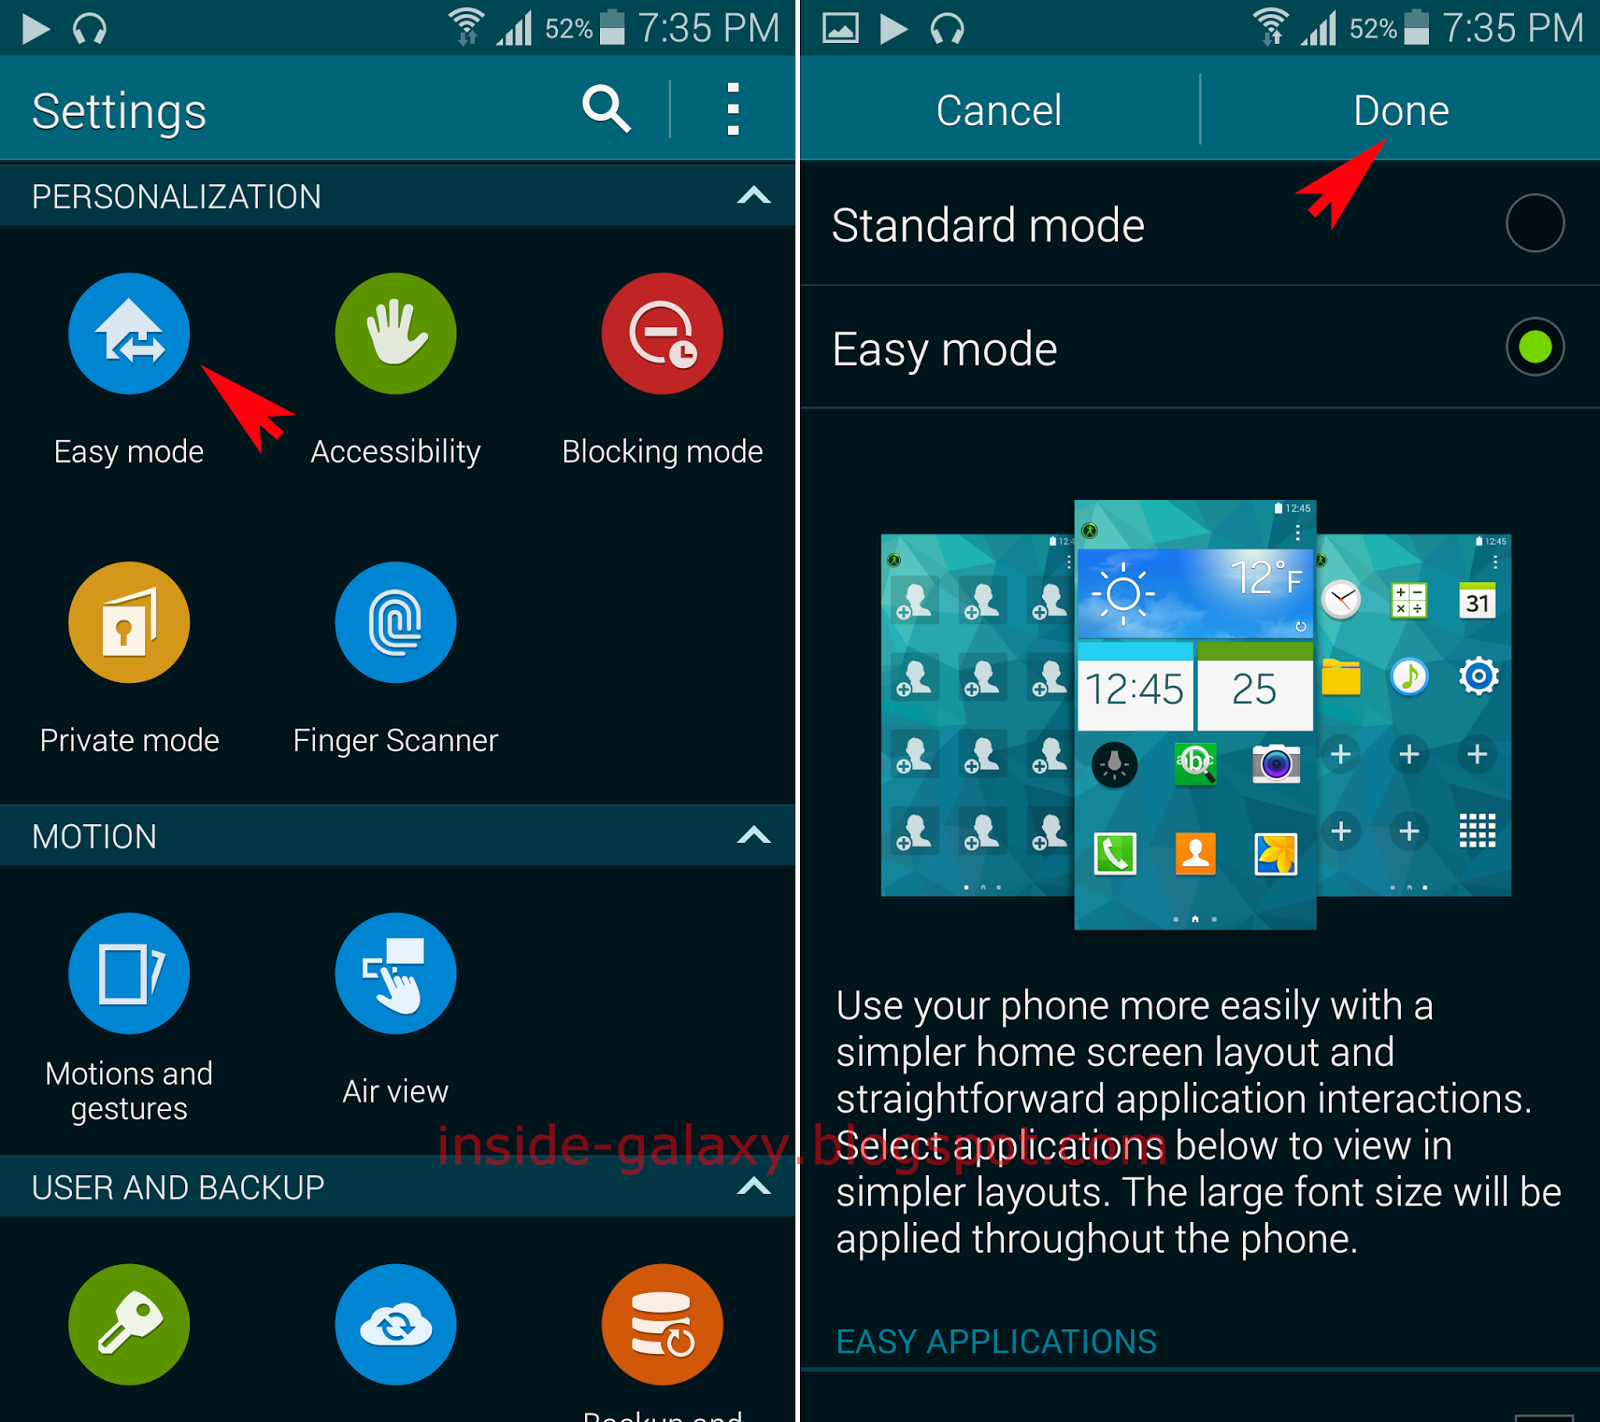 Inside Galaxy: Samsung Galaxy S5: How To Enable And